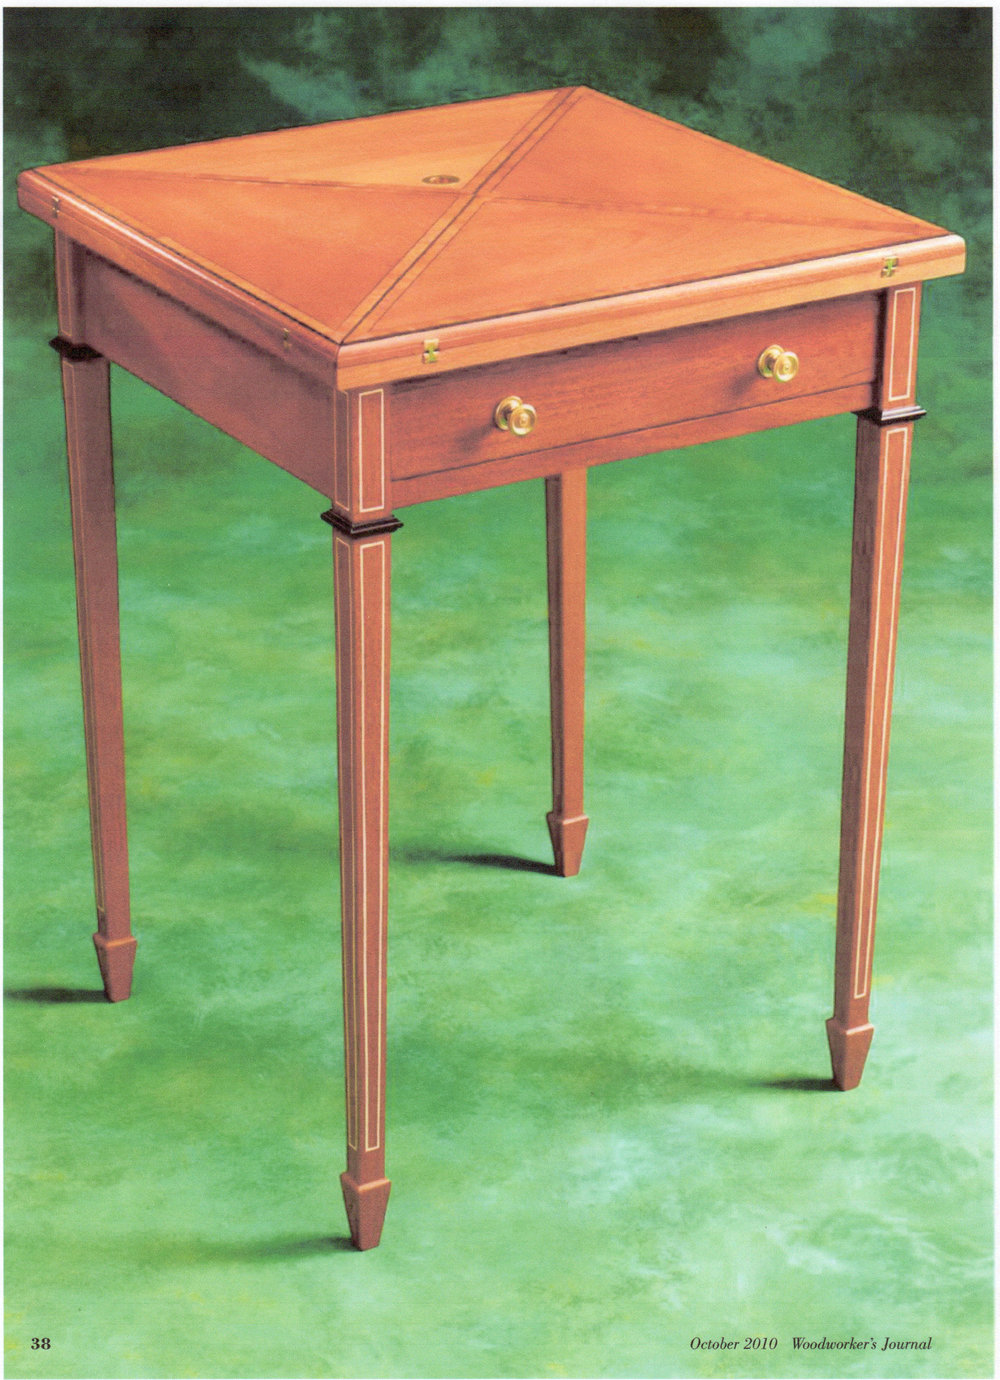 Edwardian Envelope Table